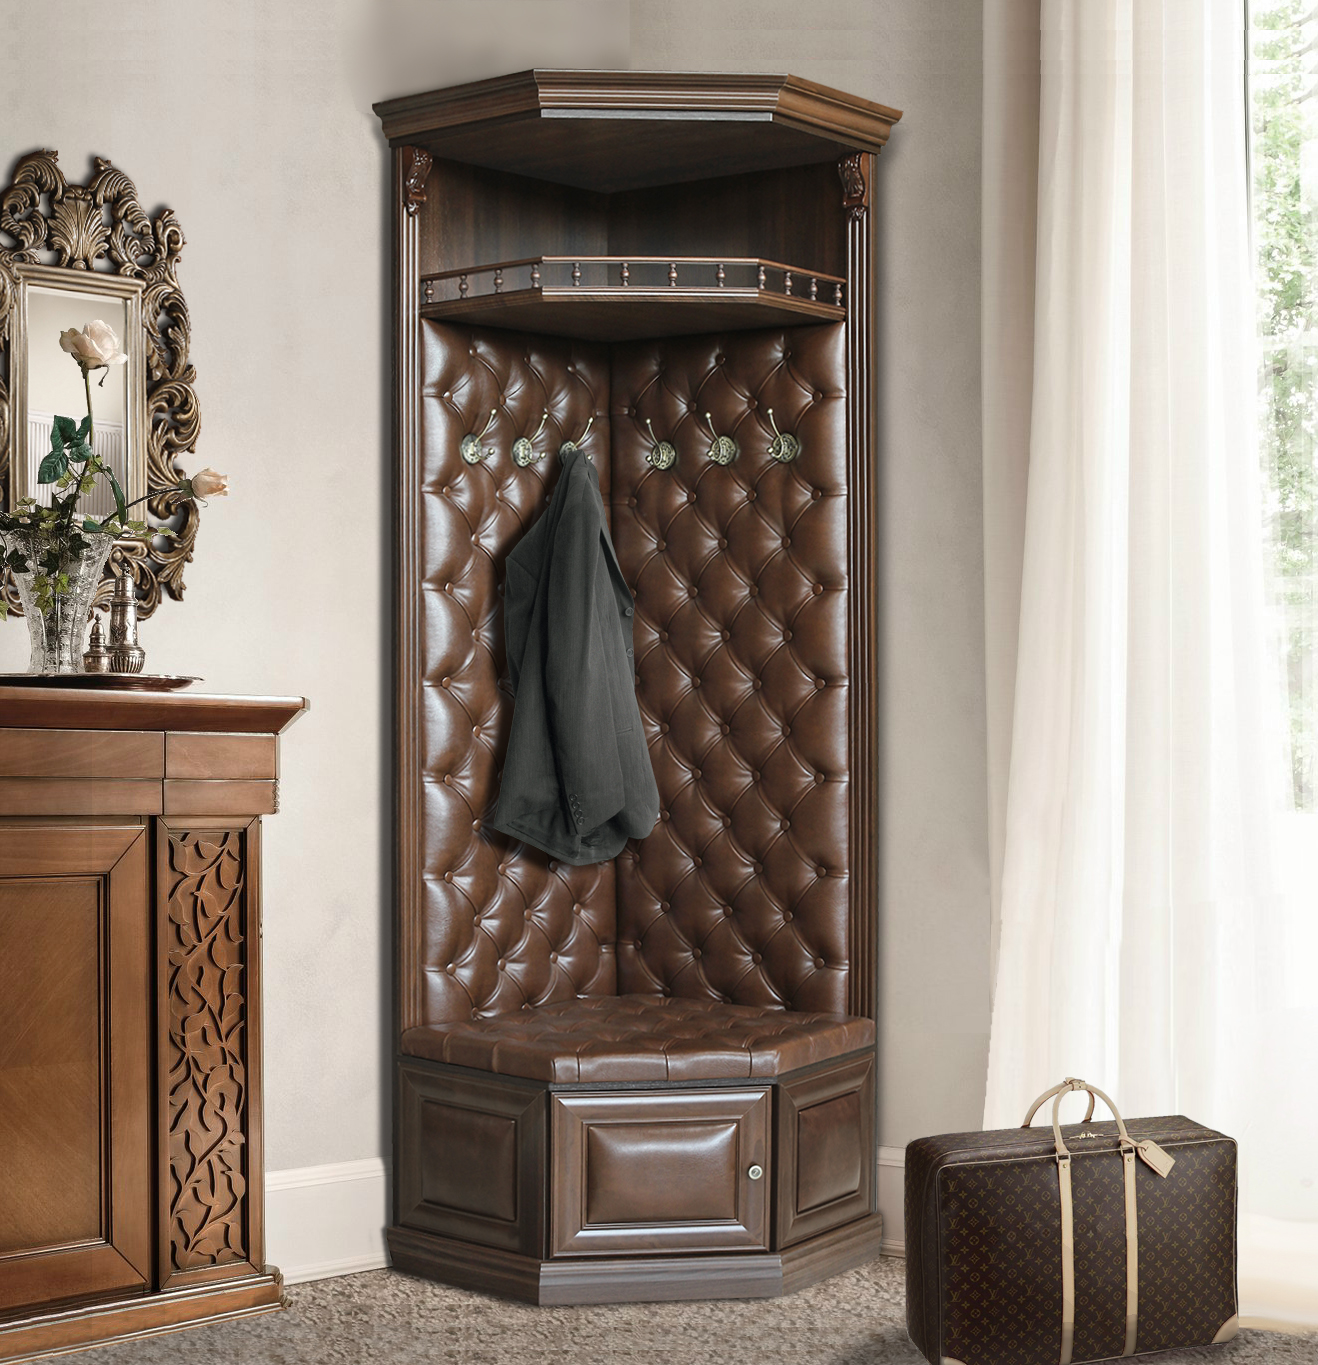 Creative%2BSmall%2BCorner%2BWall%2BCabinets%2B%252823%2529 35 Inventive Small Nook Wall Cupboards Interior